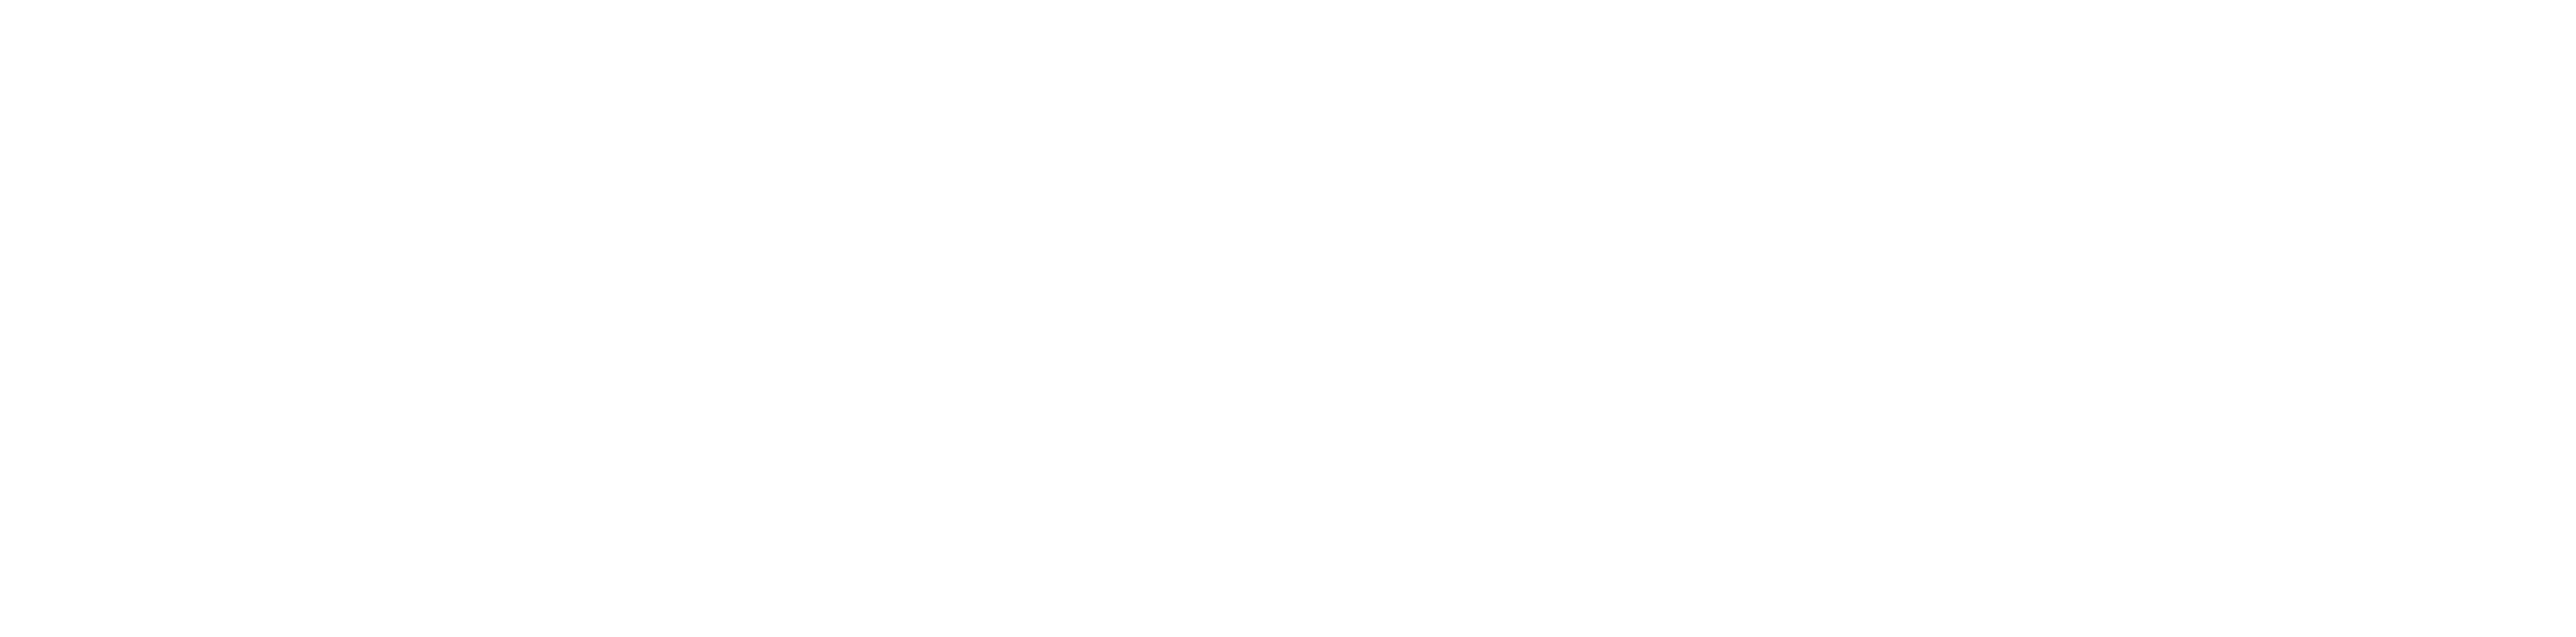 The Toro Historical Review